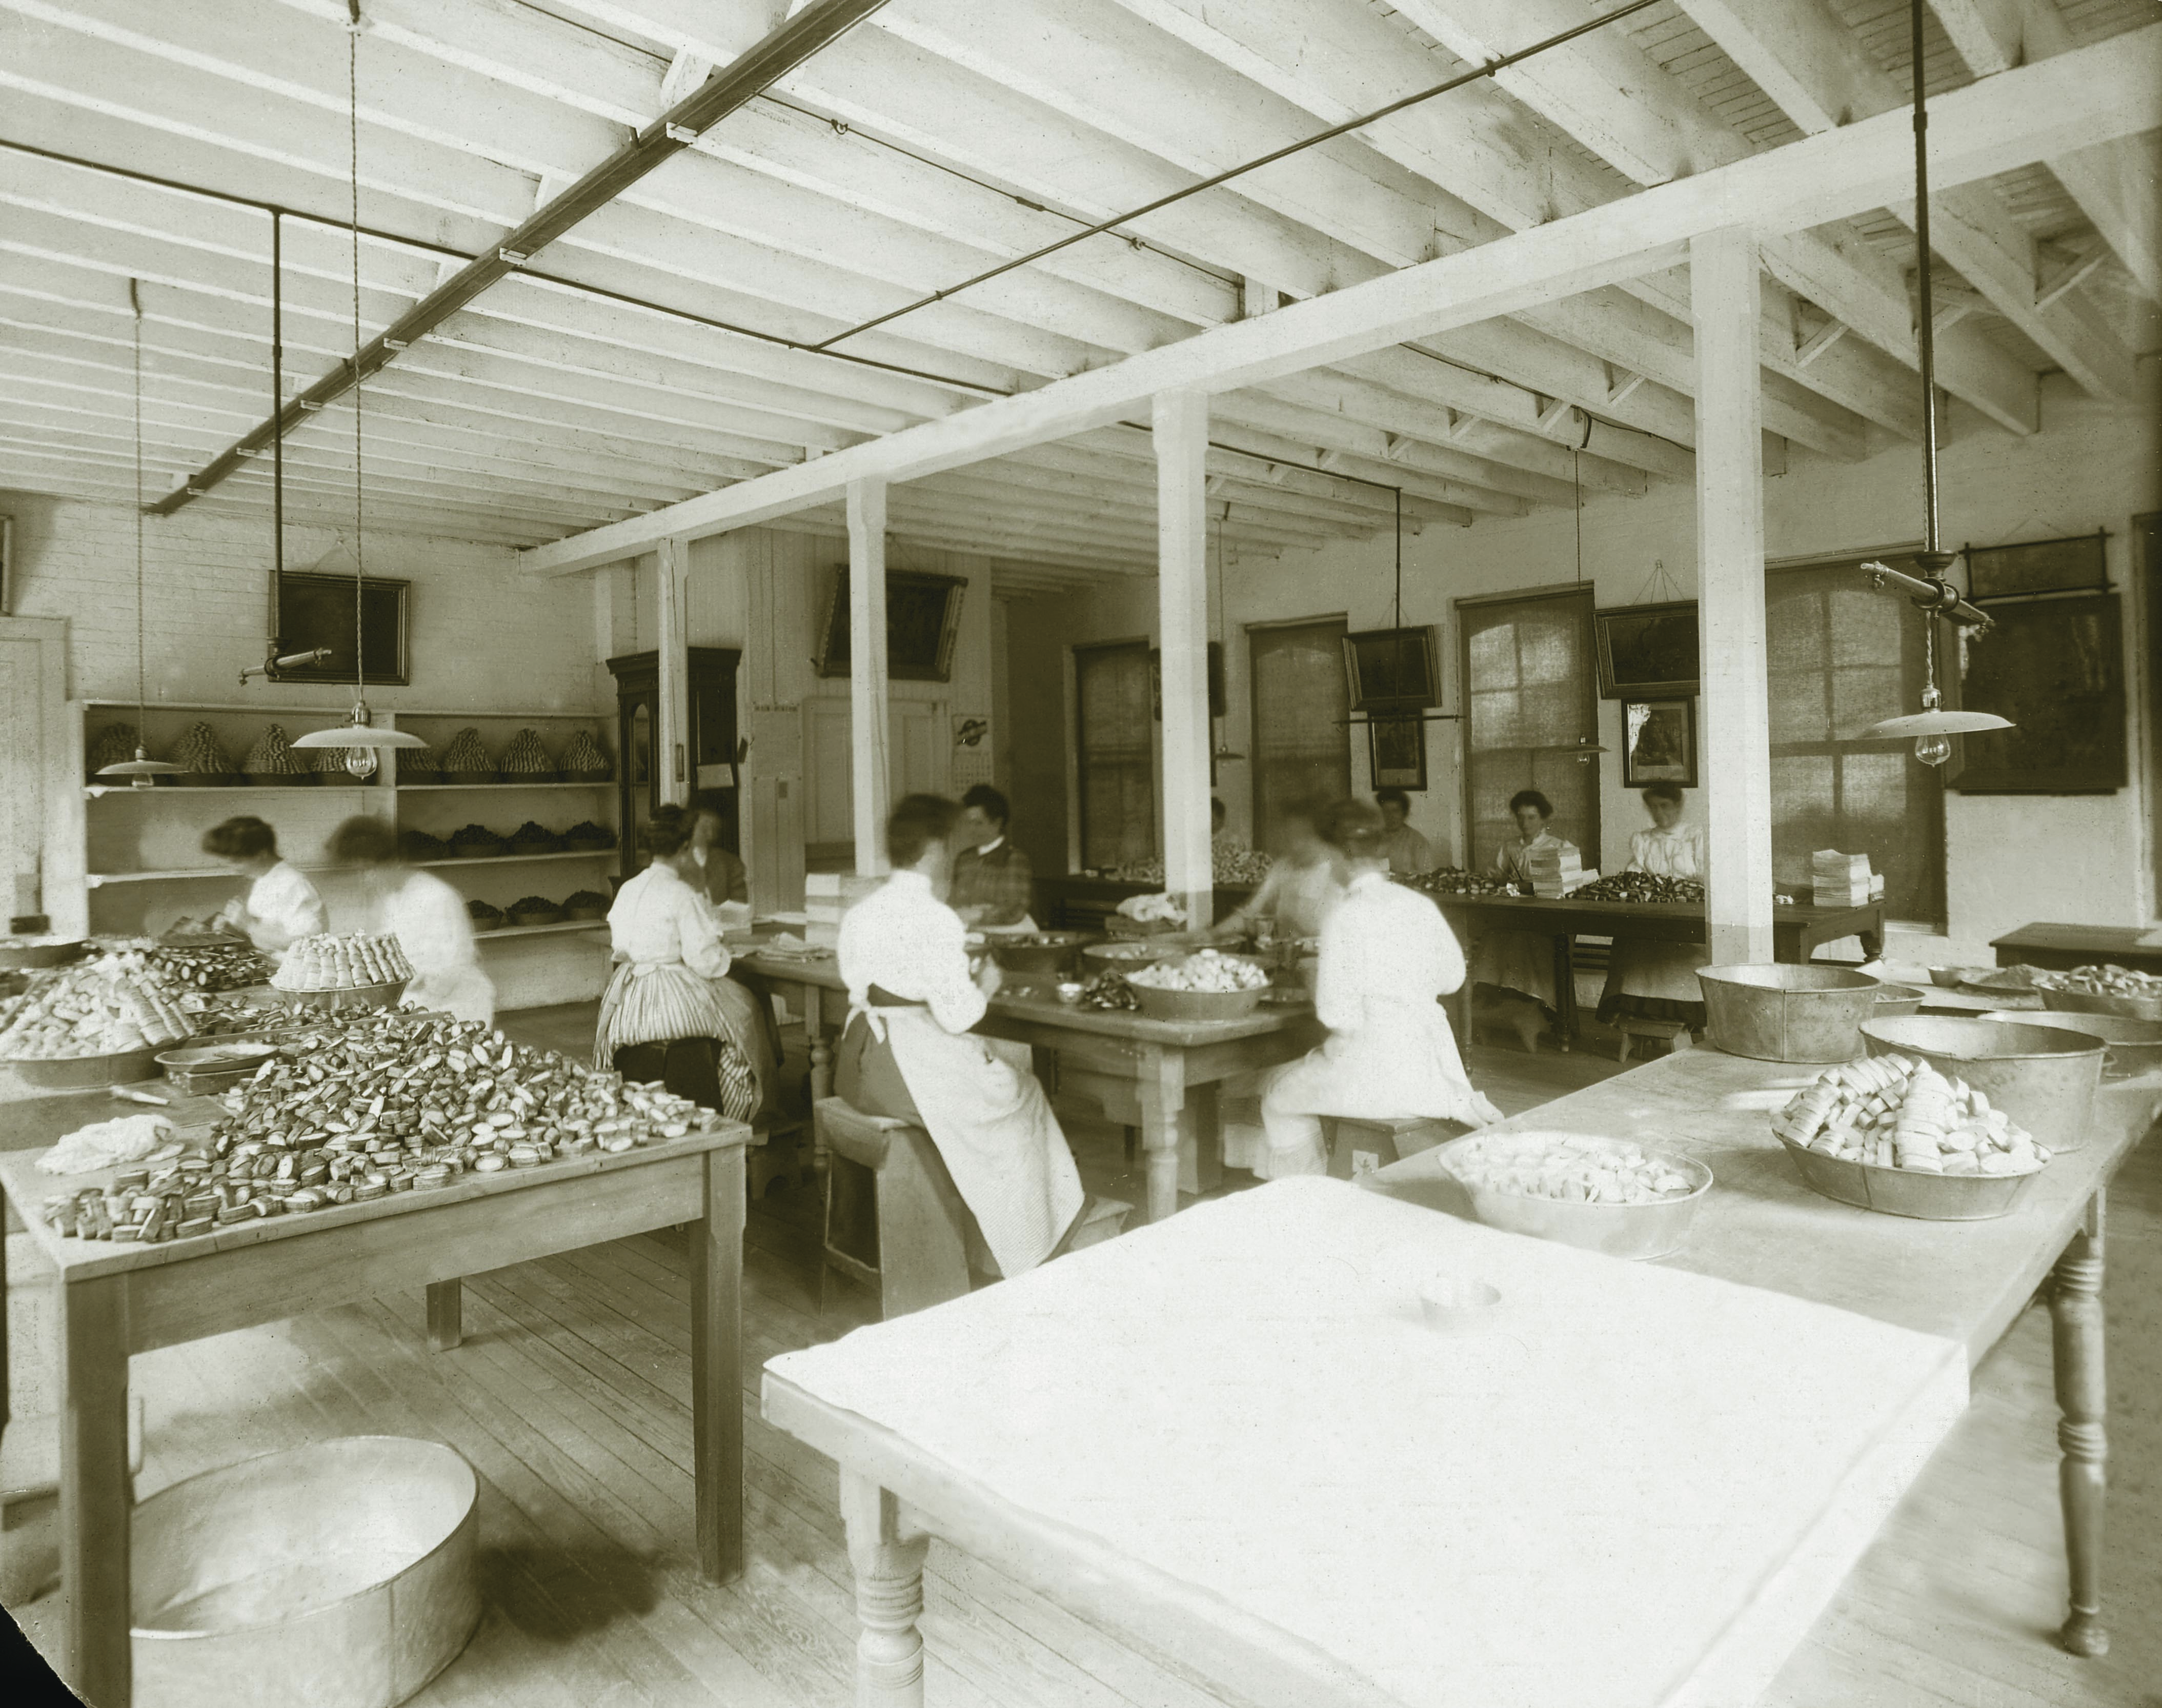 Workers Packing Pills